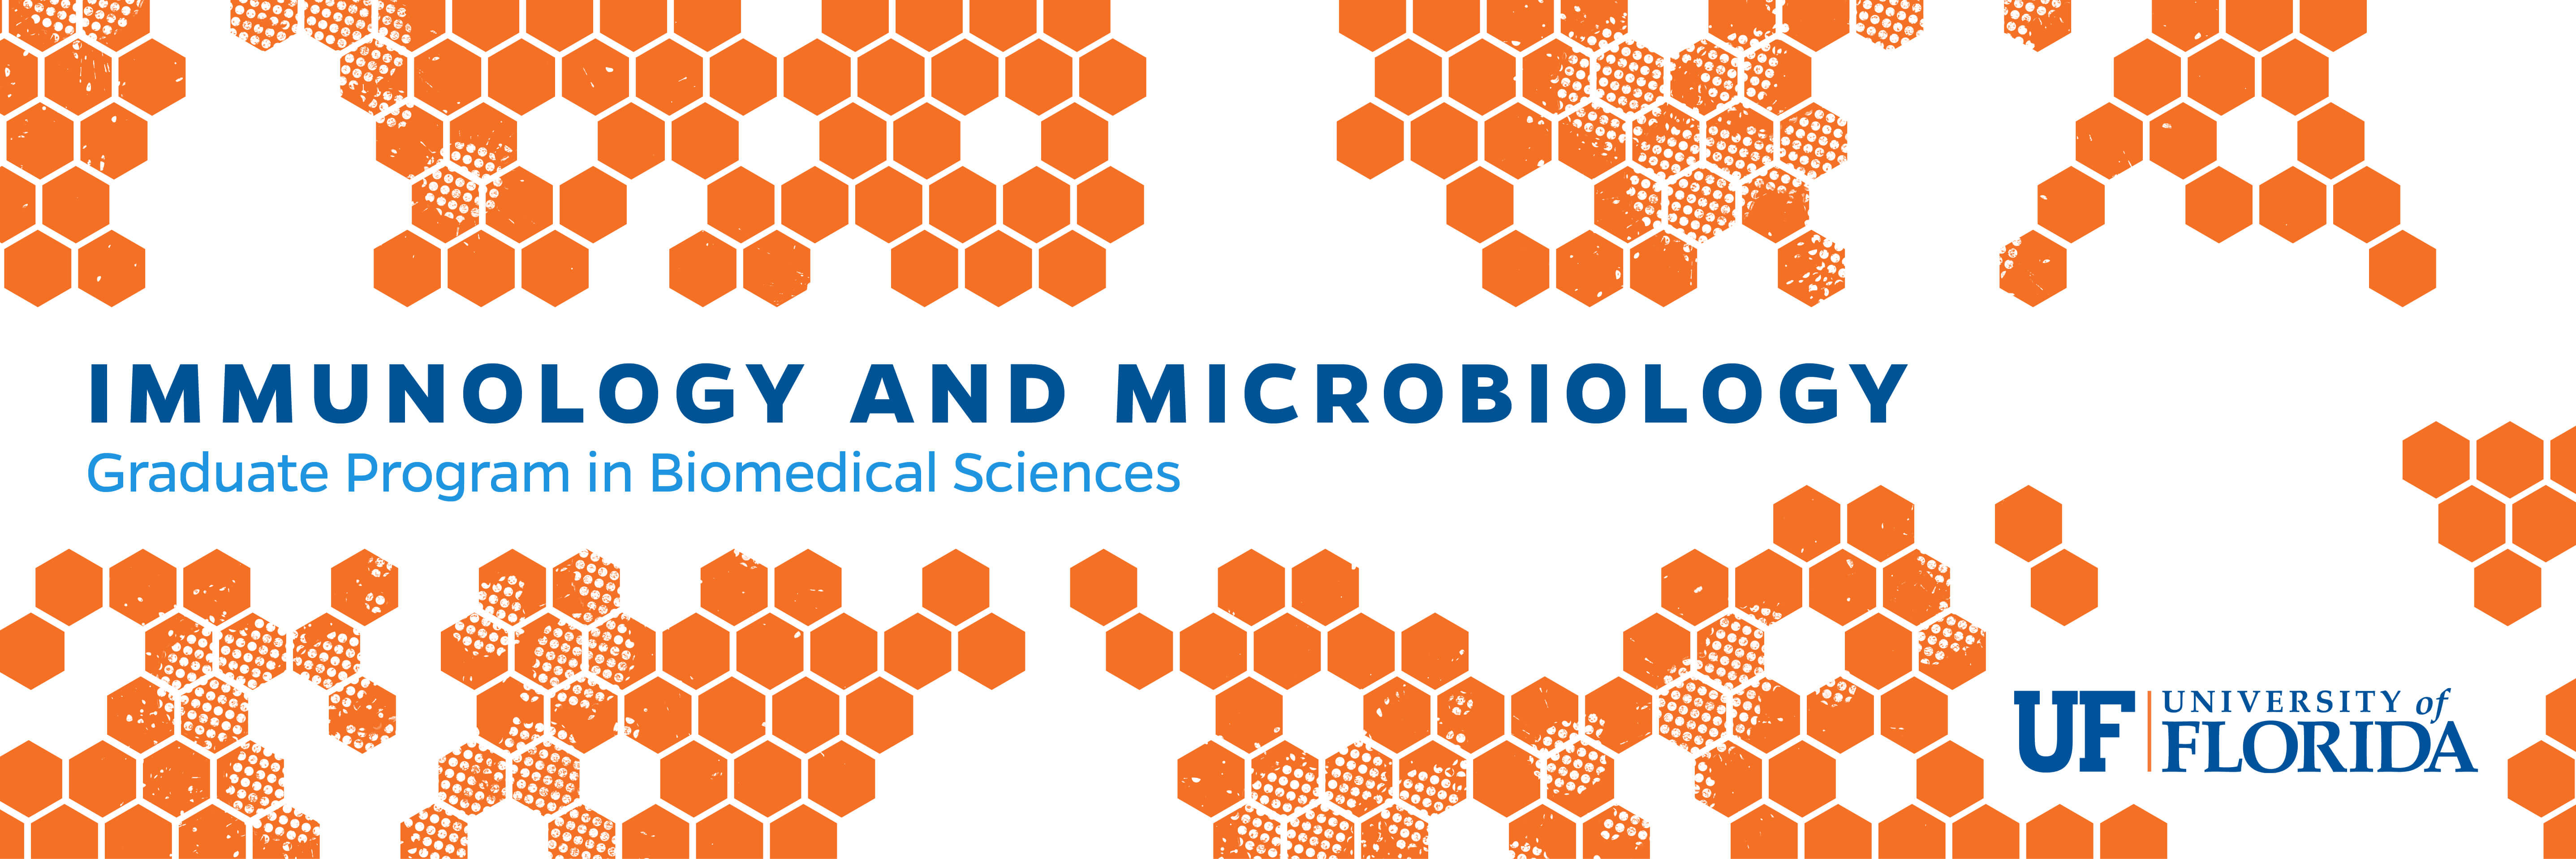 Immunology and Microbiology banner